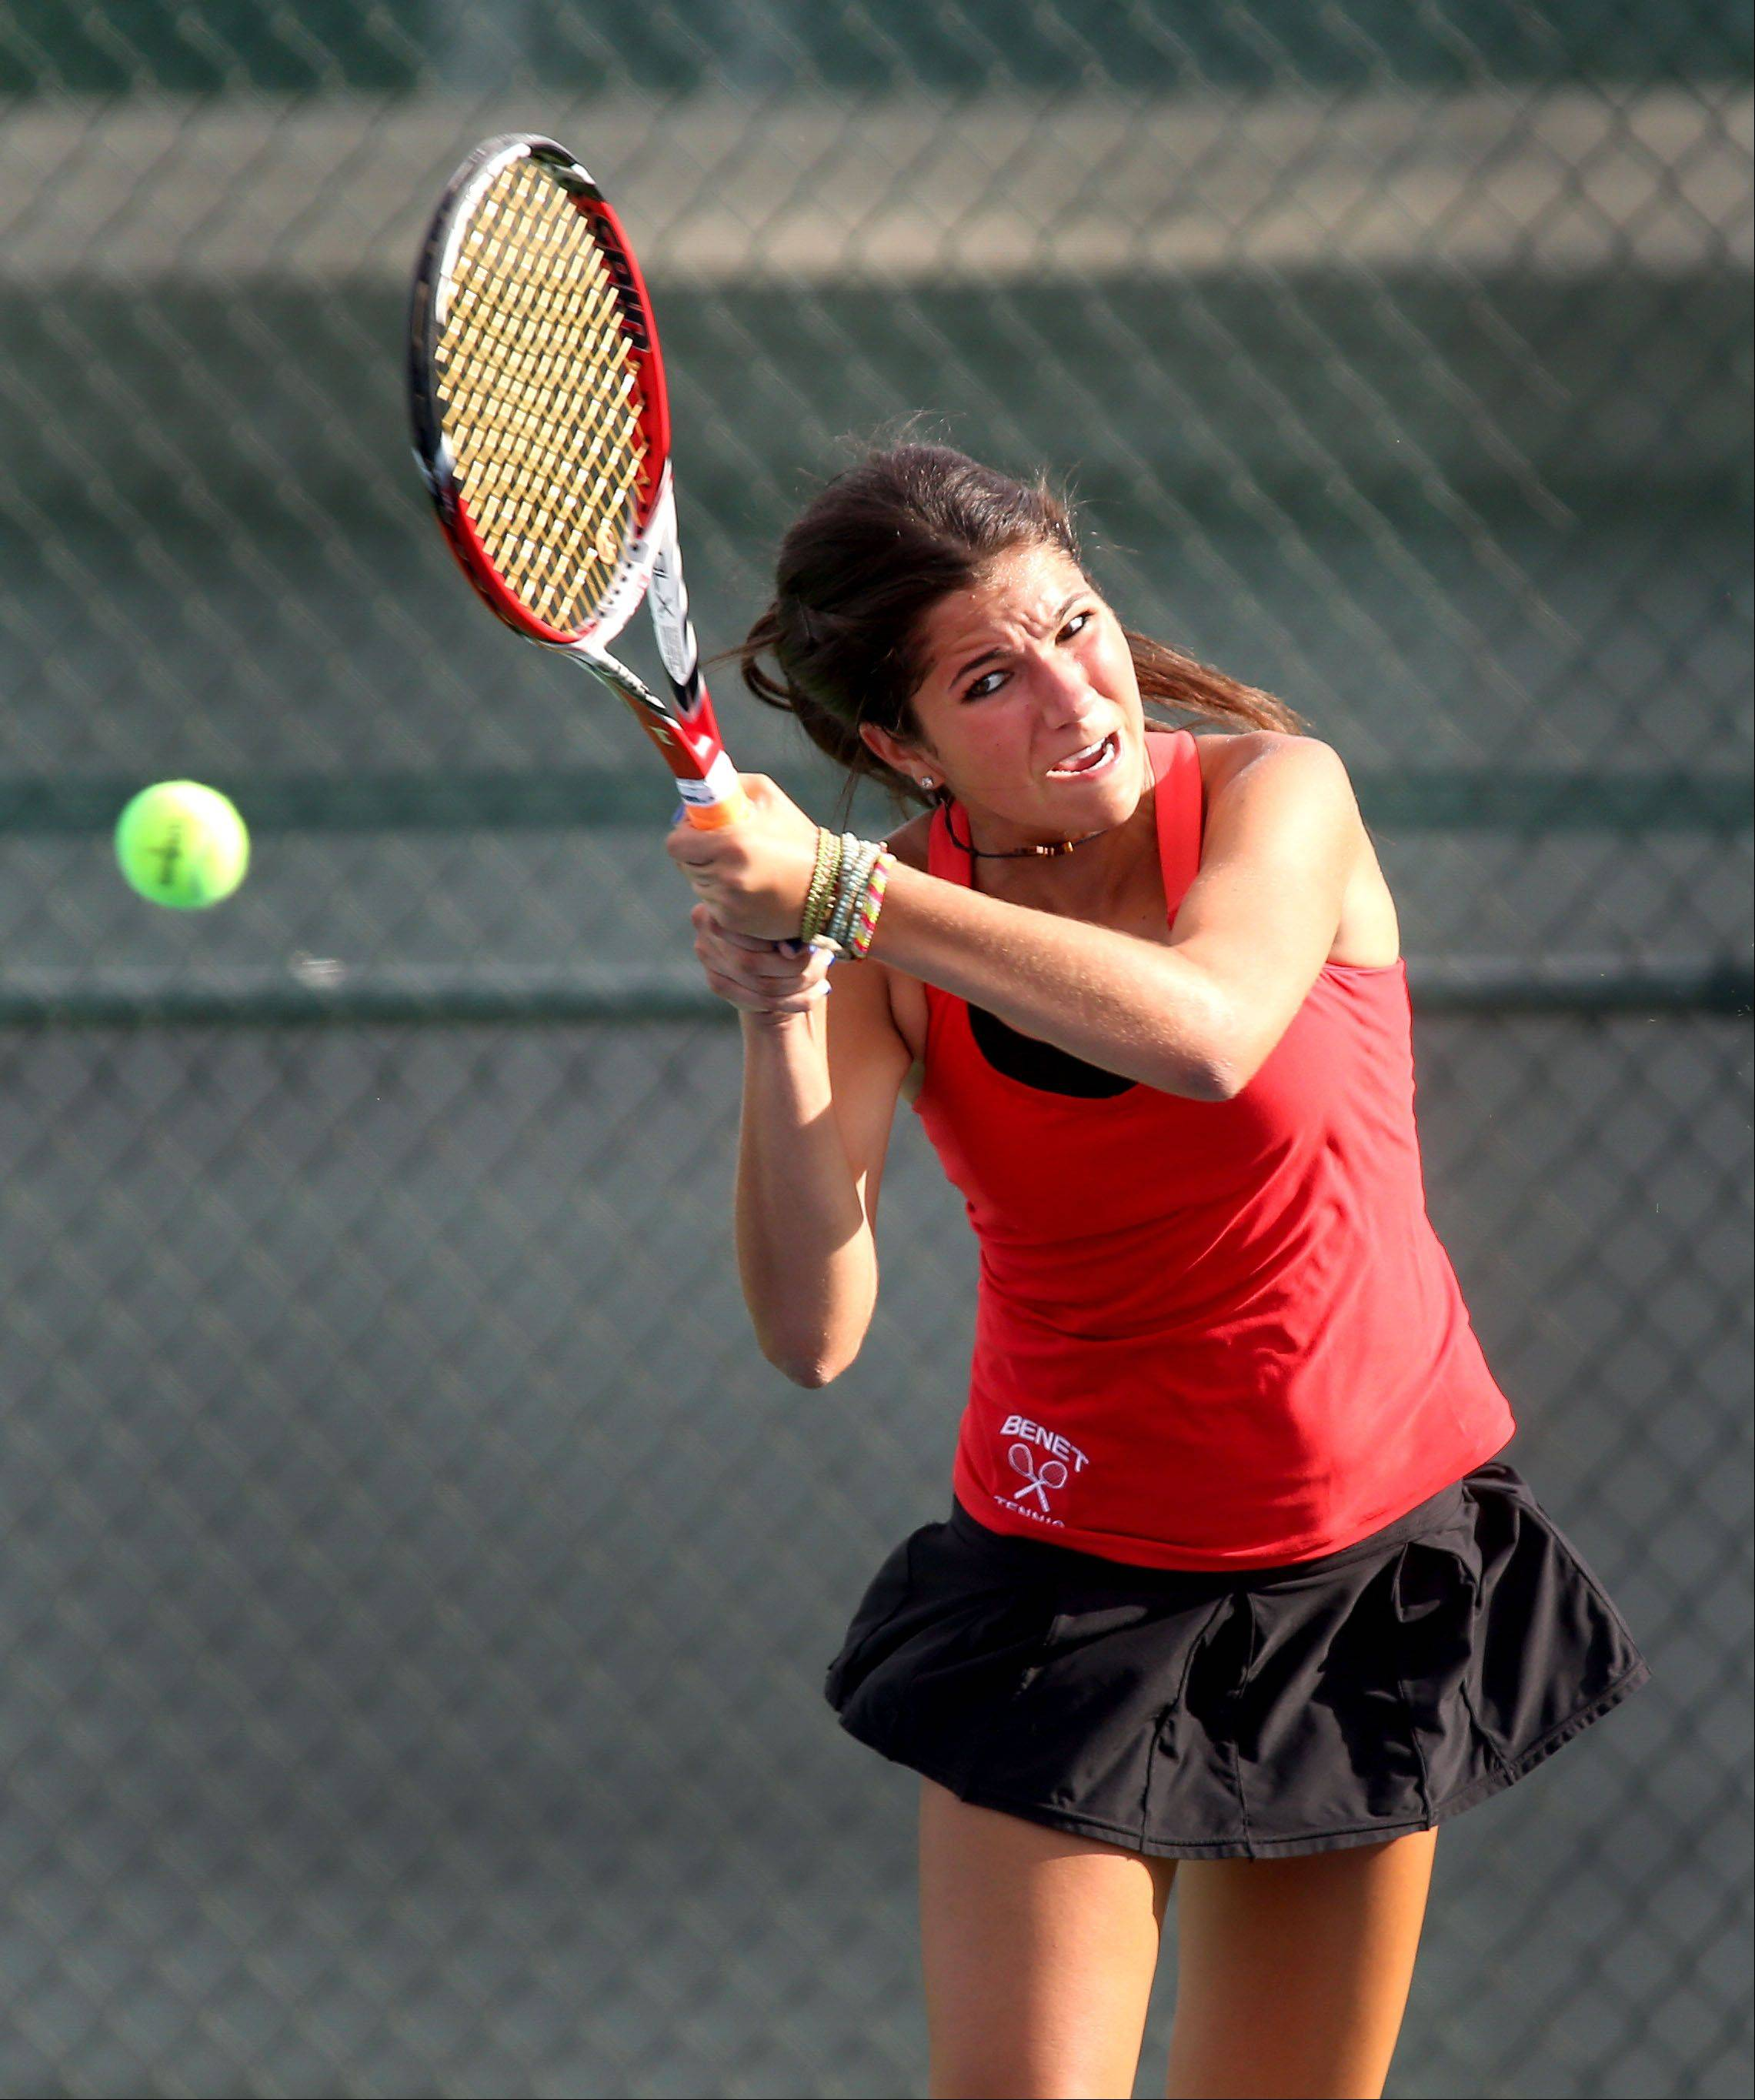 Benet's Leah Tzakis returns the ball during Tuesday's tennis match against Naperville Central in Naperville.